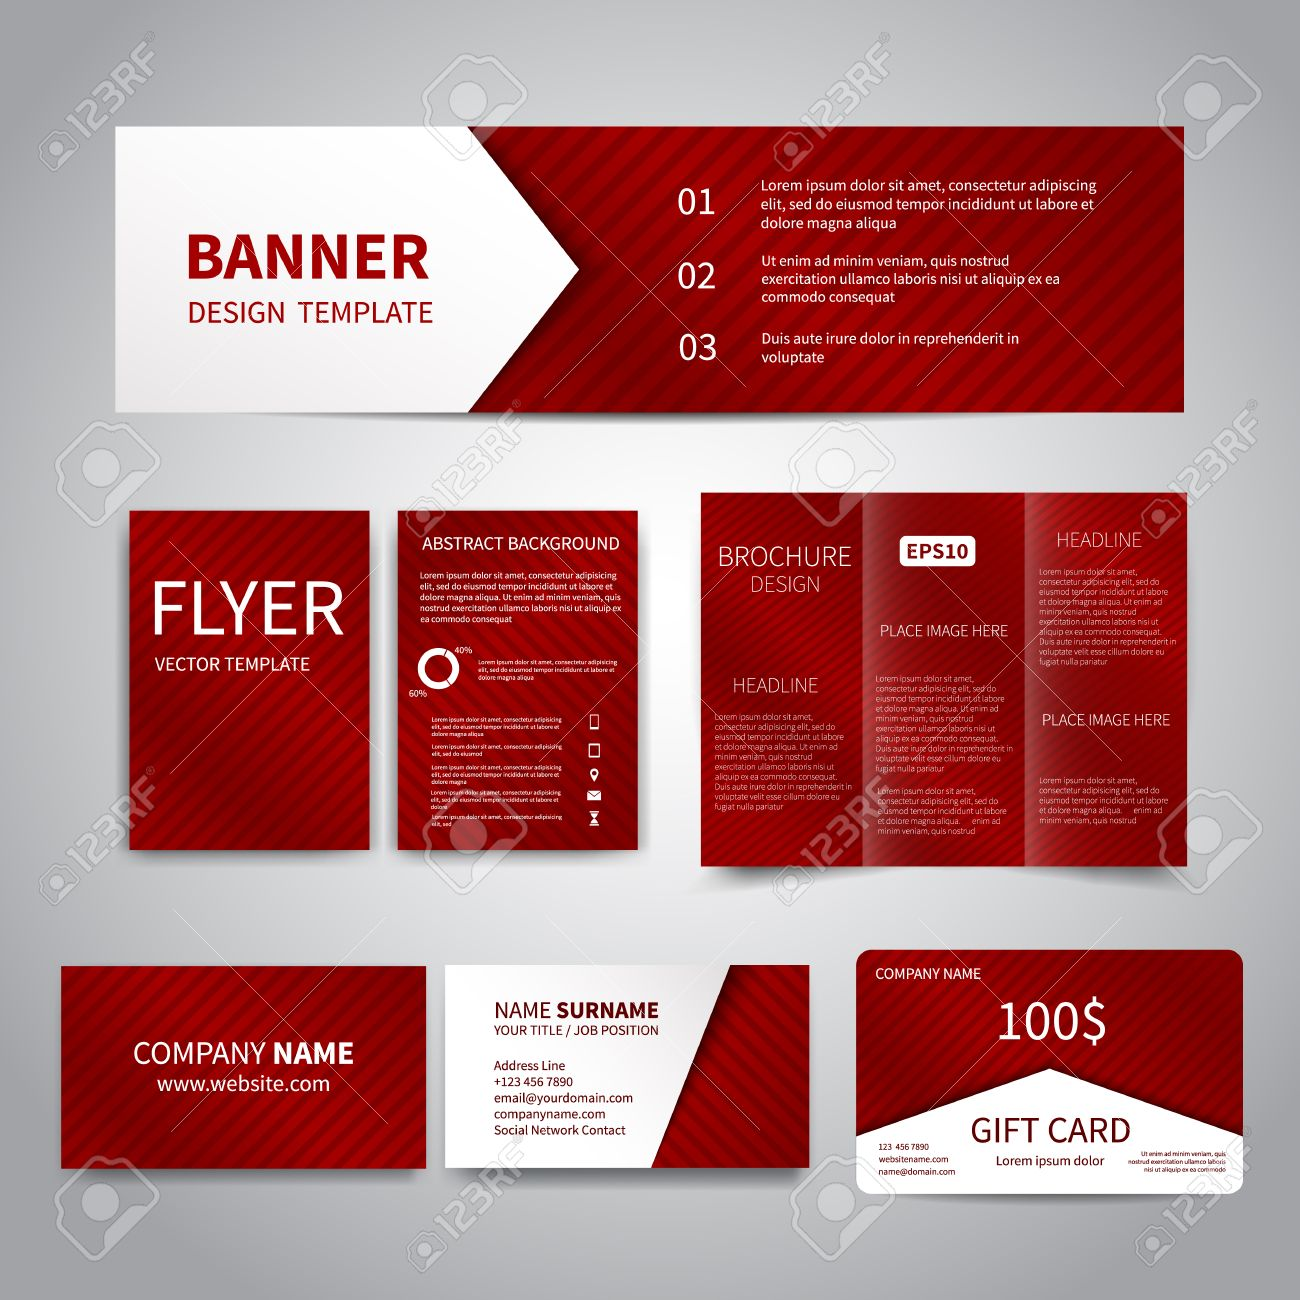 banner flyers brochure business cards gift card design templates set with red